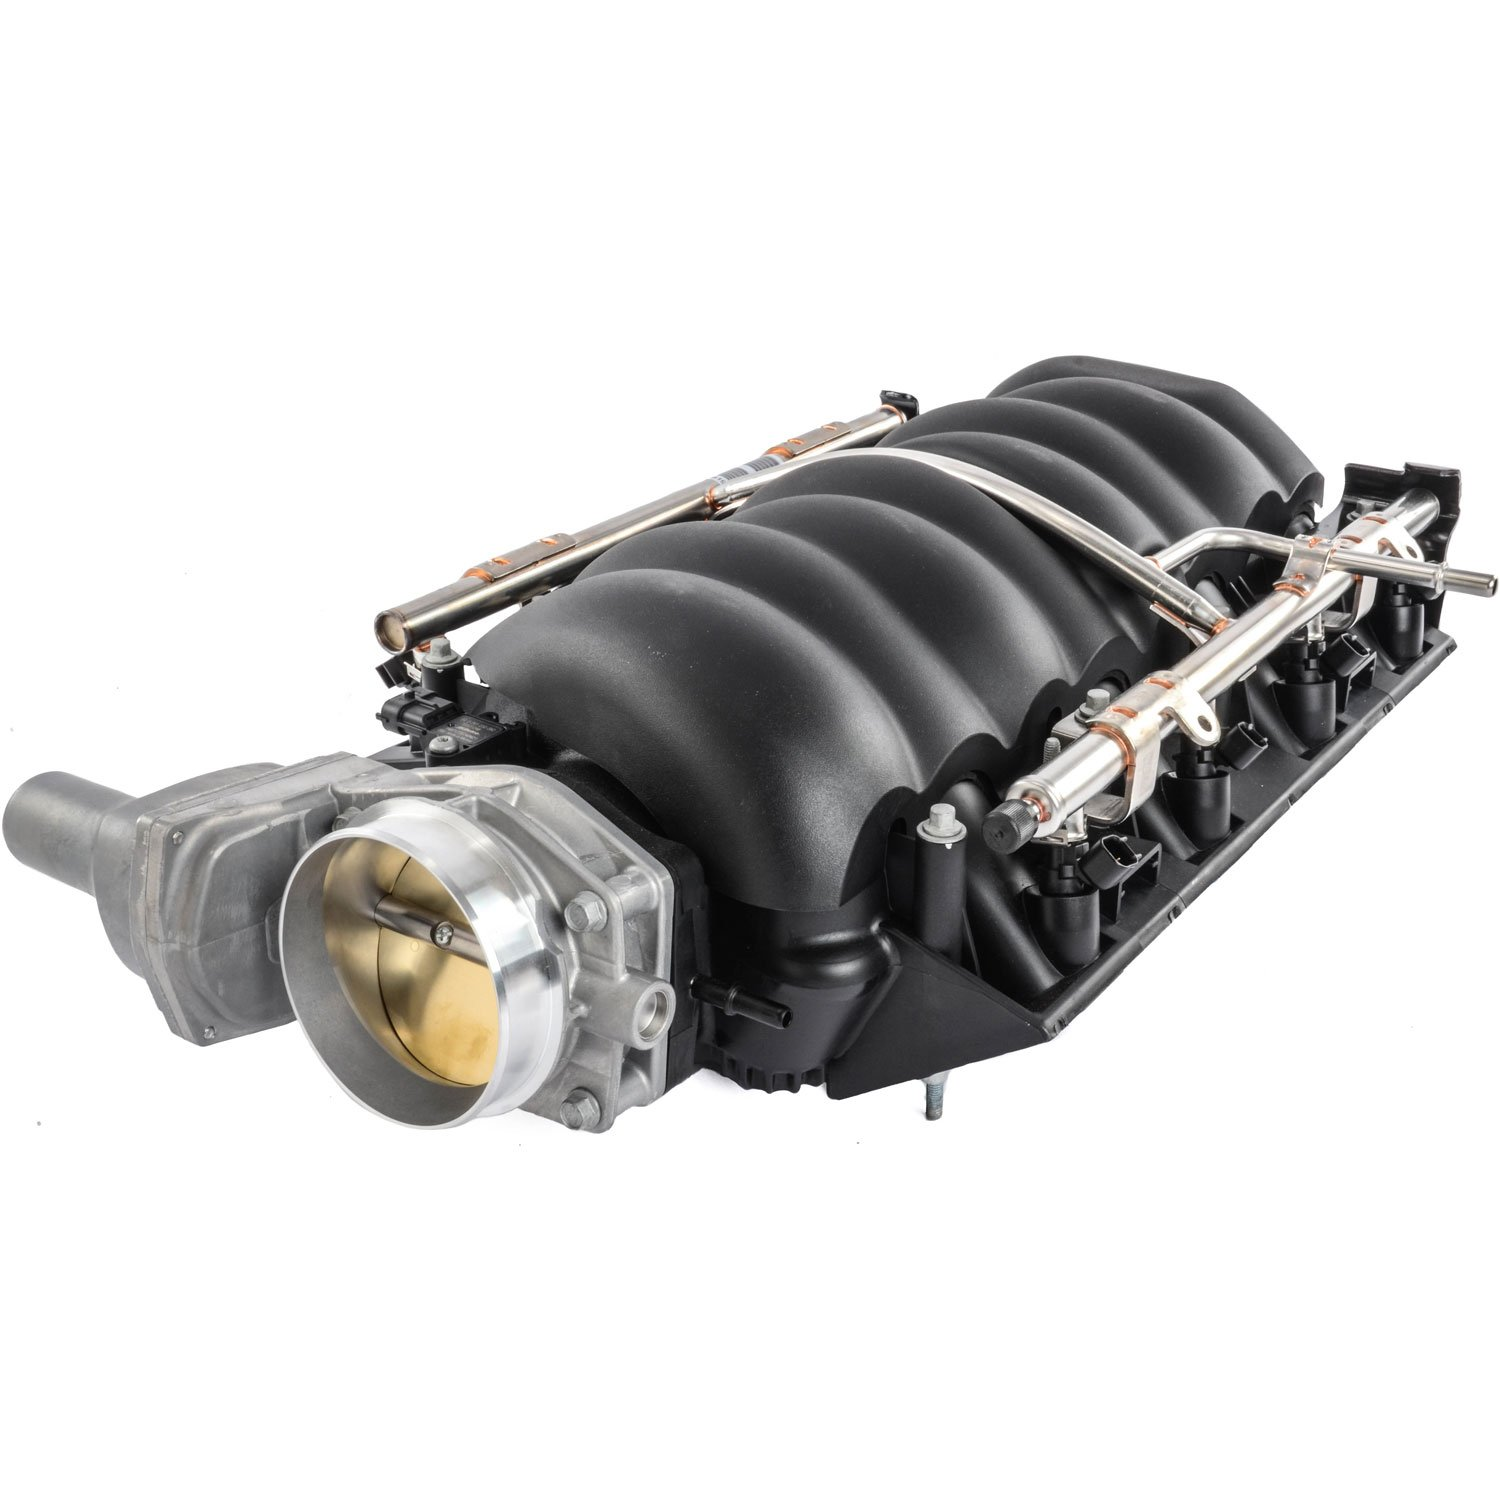 Chevrolet Performance LS3/L92 Intake Manifold Assembly